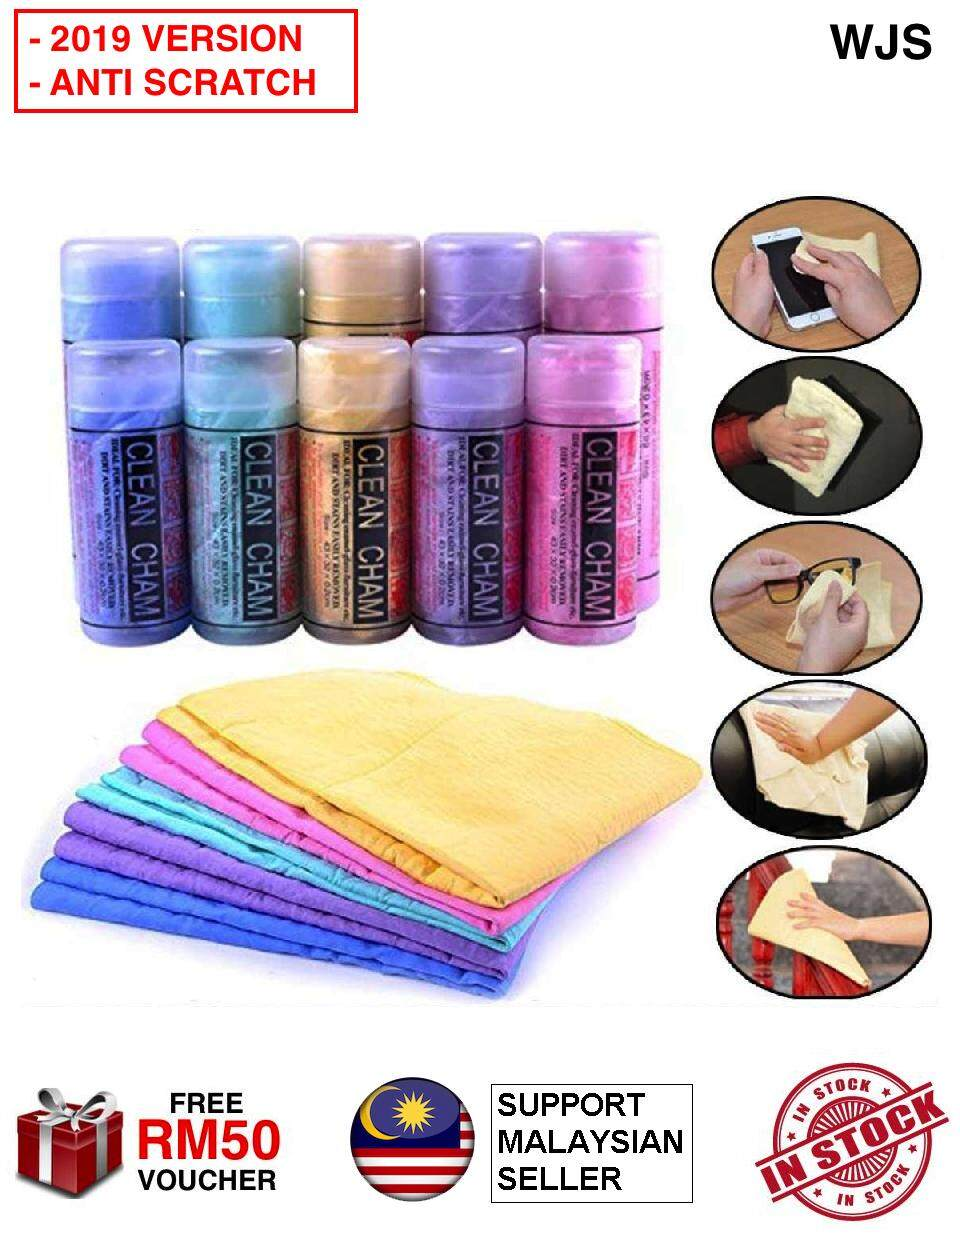 (2020 VERSION) WJS Quality Anti Scratch Car Wash Cloth Chamois Leather Deer Skin Clean Cham Small Size with Casing for Wet Dry Cleaning Cloth Car Interior Exterior PINK [FREE RM 50 VOUCHER]